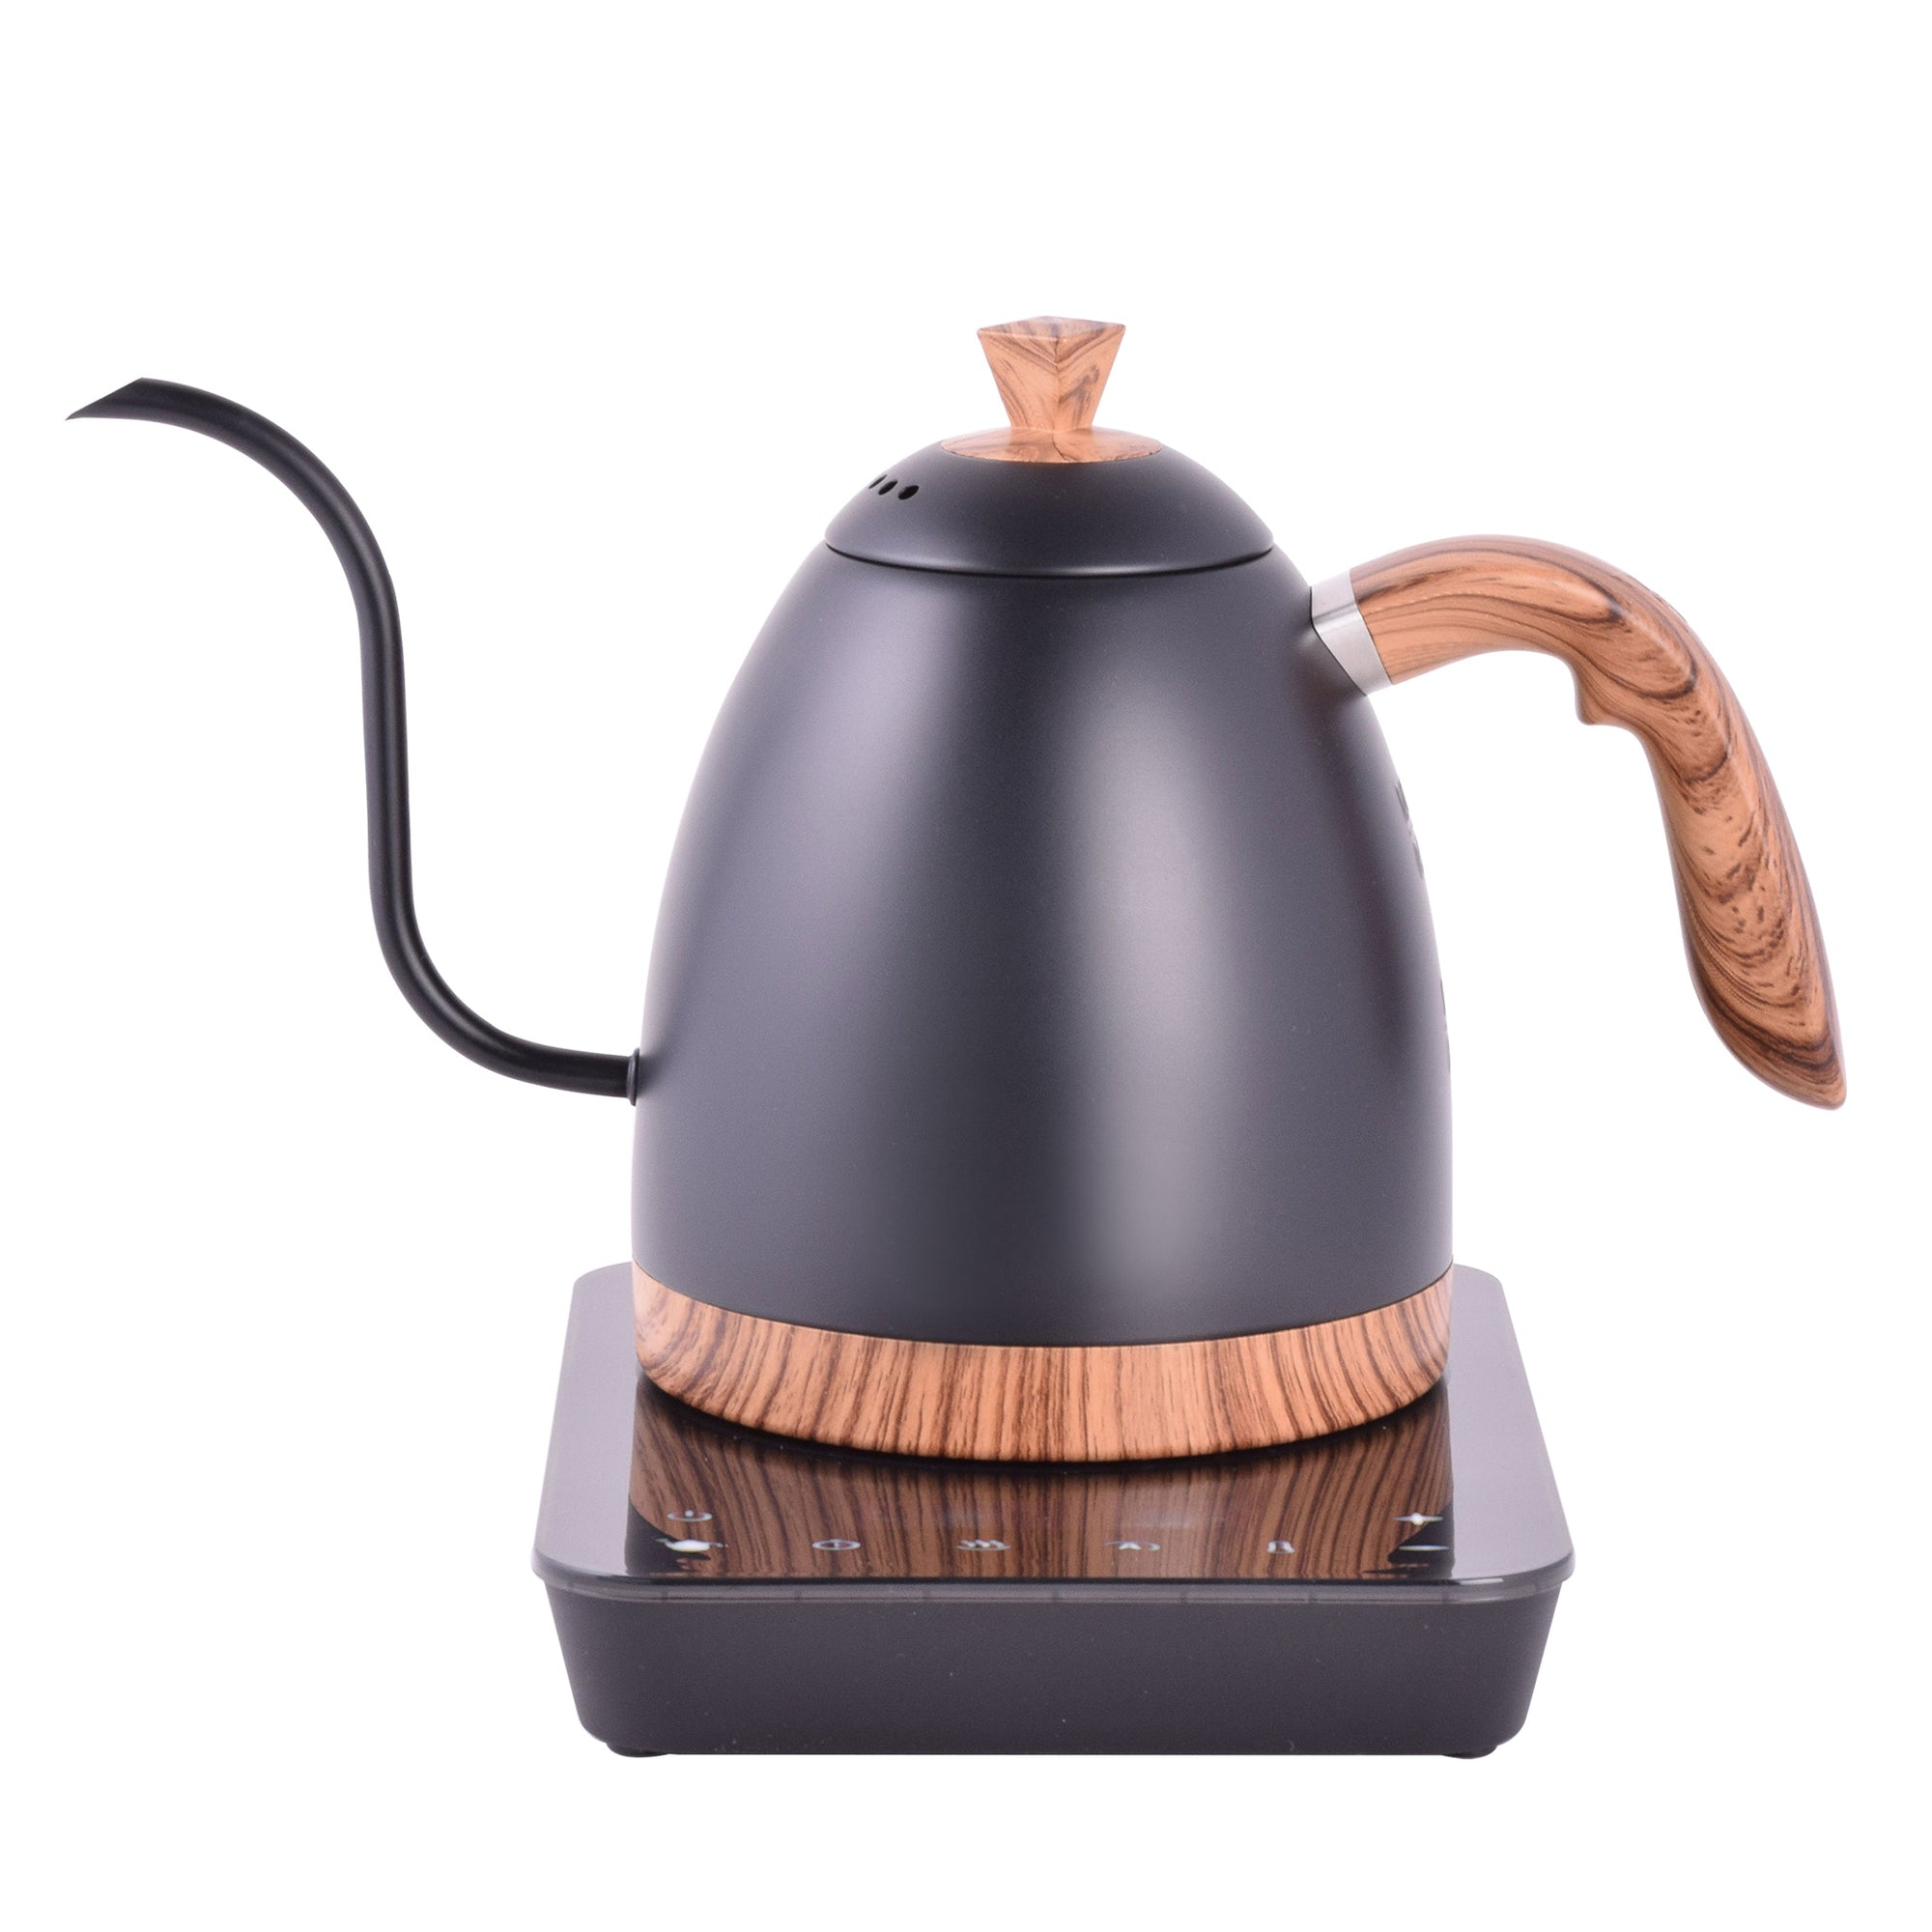 Kettle Artisan Matt Black 0.9L - Brewista - Espresso Gear